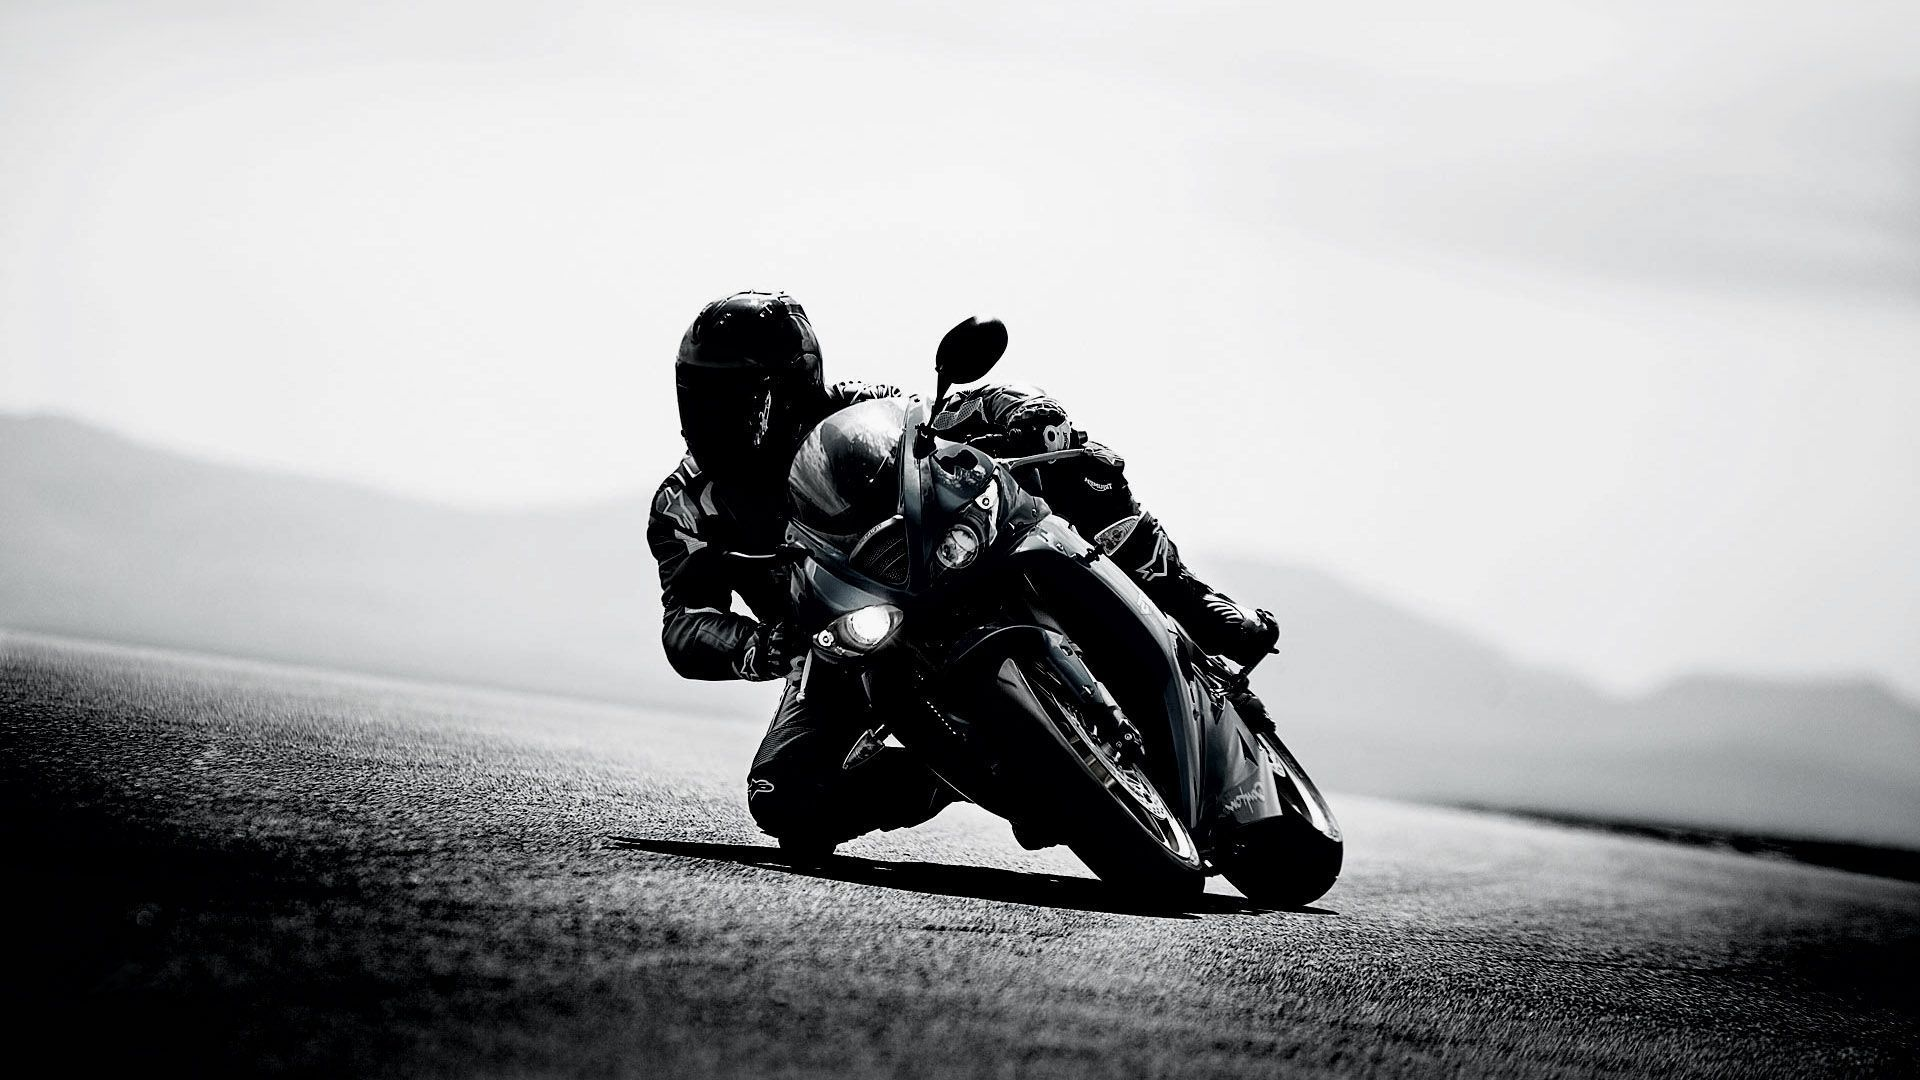 bike black and white, hd bikes, 4k wallpapers, images, backgrounds